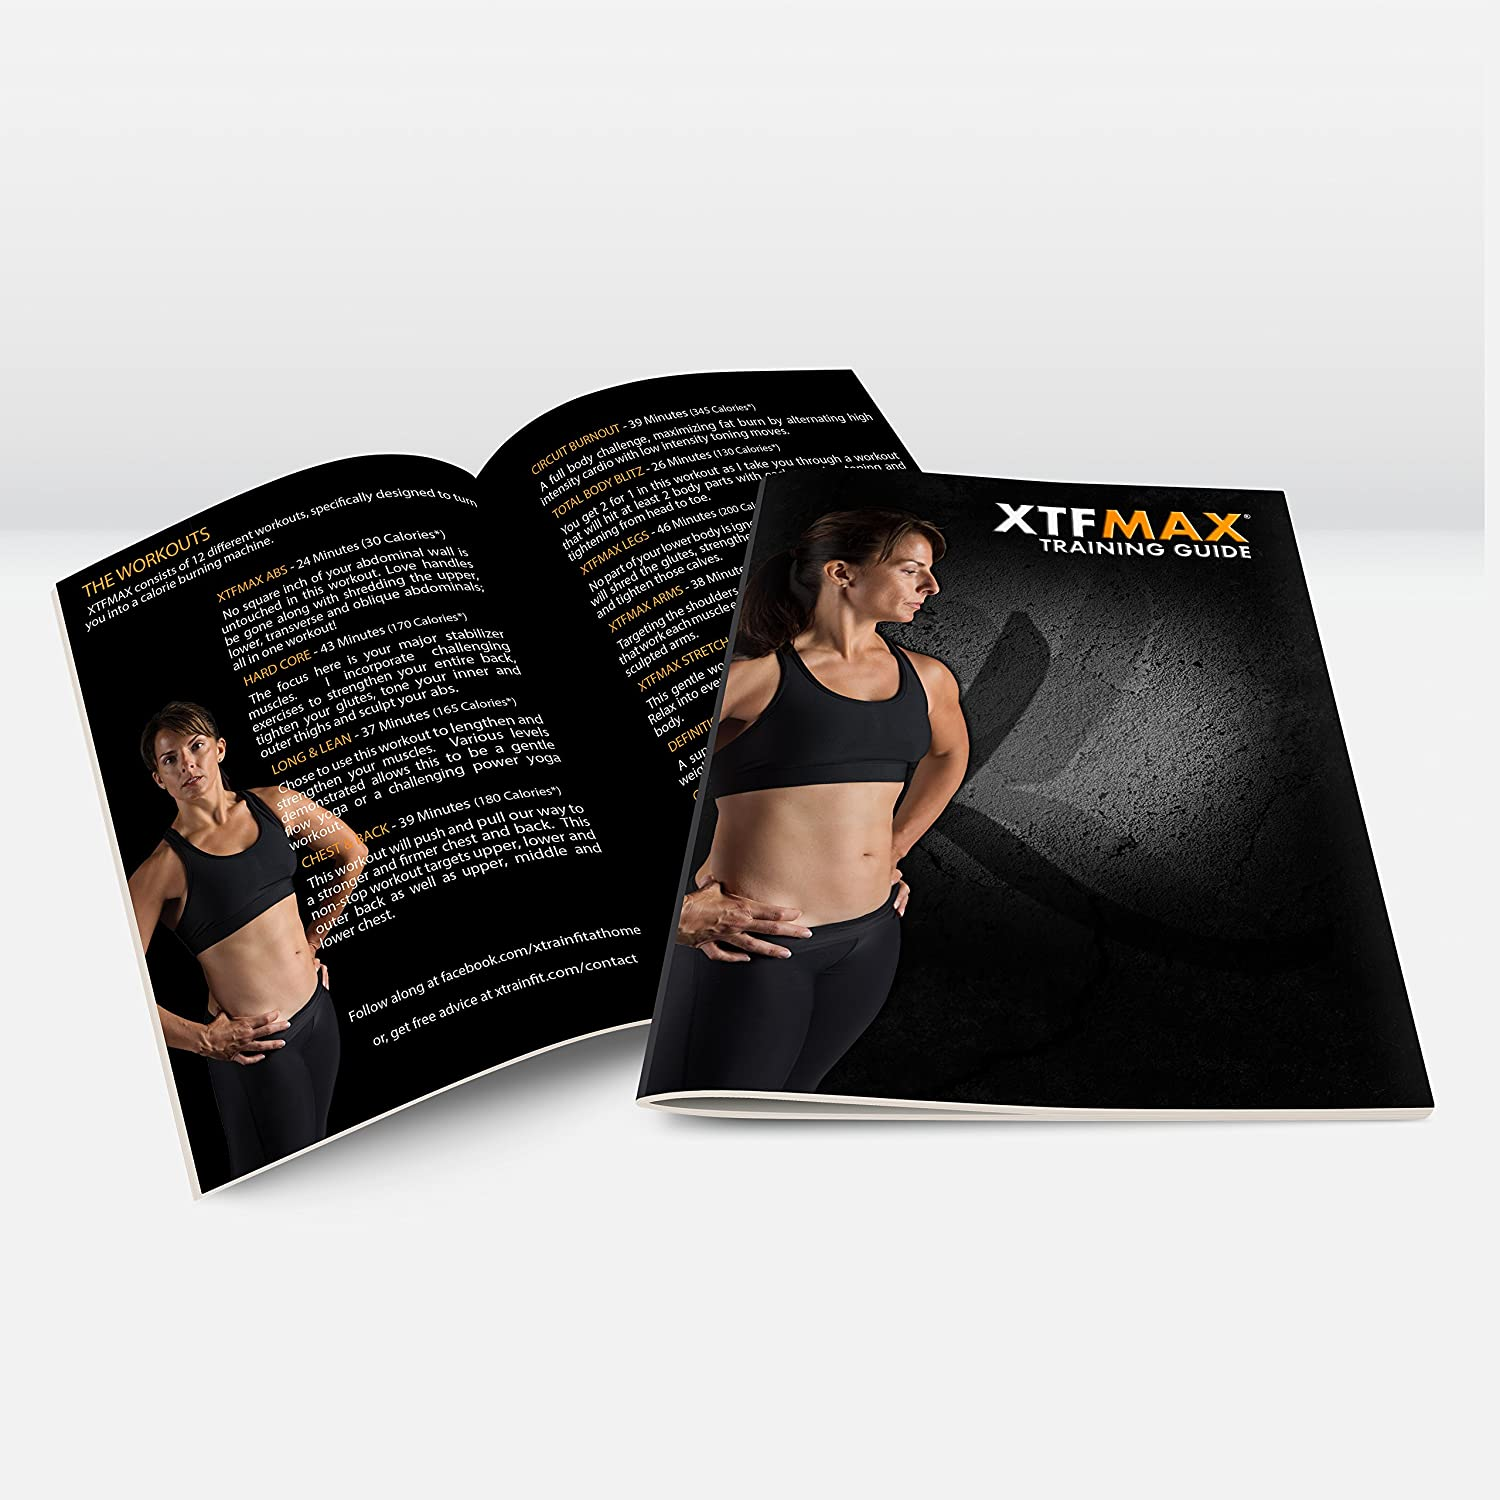 Xtfmax 90 Day Dvd Workout Program With 12 Exercise Minute Full Body Circuit Sexy And I Know It Pinterest Videos Training Calendar Fitness Guide Nutrition Plan Sports Outdoors